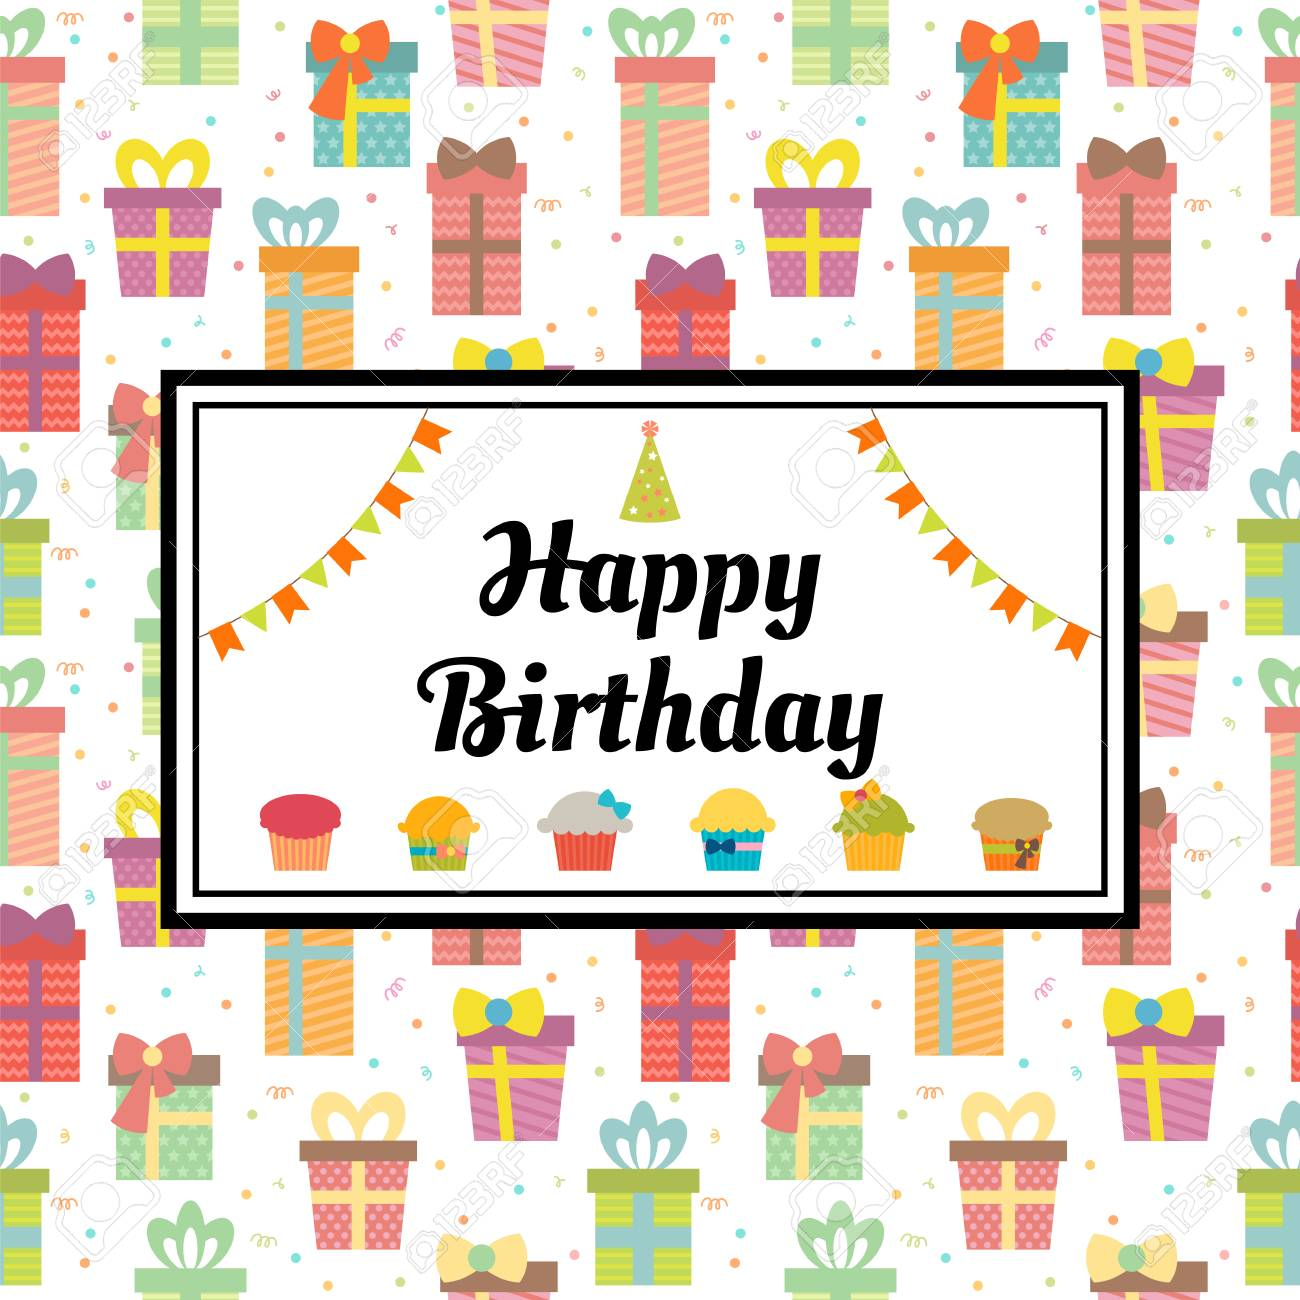 Happy Birthday Greeting Card With Gift Boxes And Cupcakes Cute